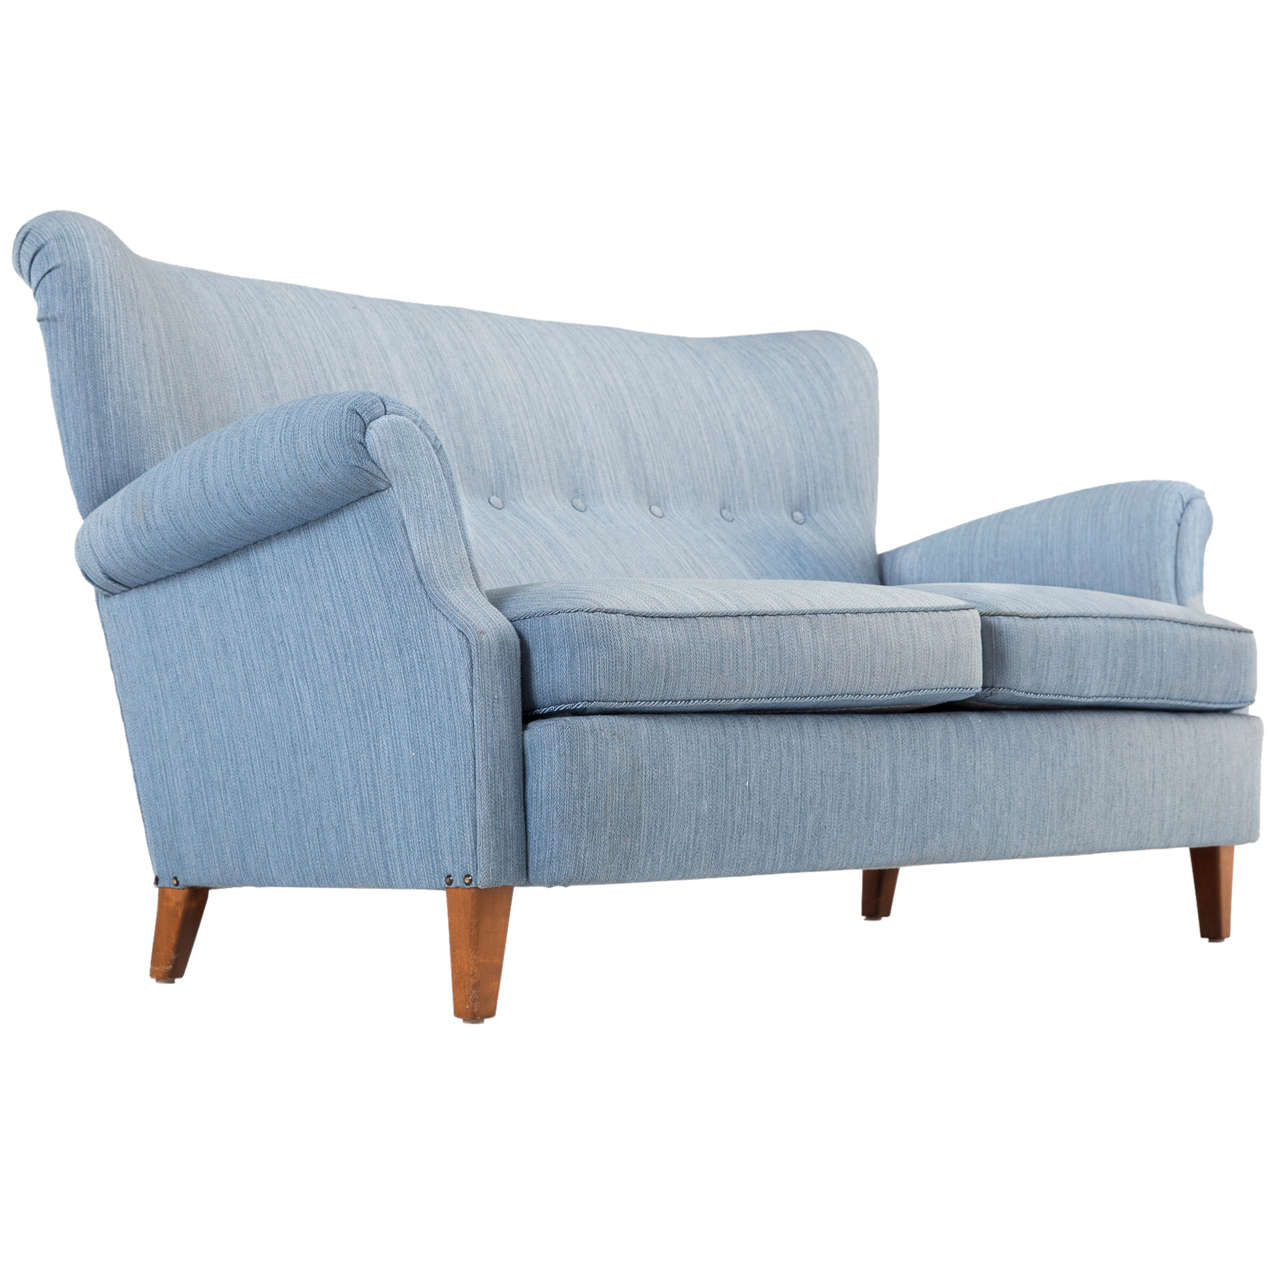 Swedish blue two seat sofa 1950s for sale at 1stdibs for Blue sofas for sale